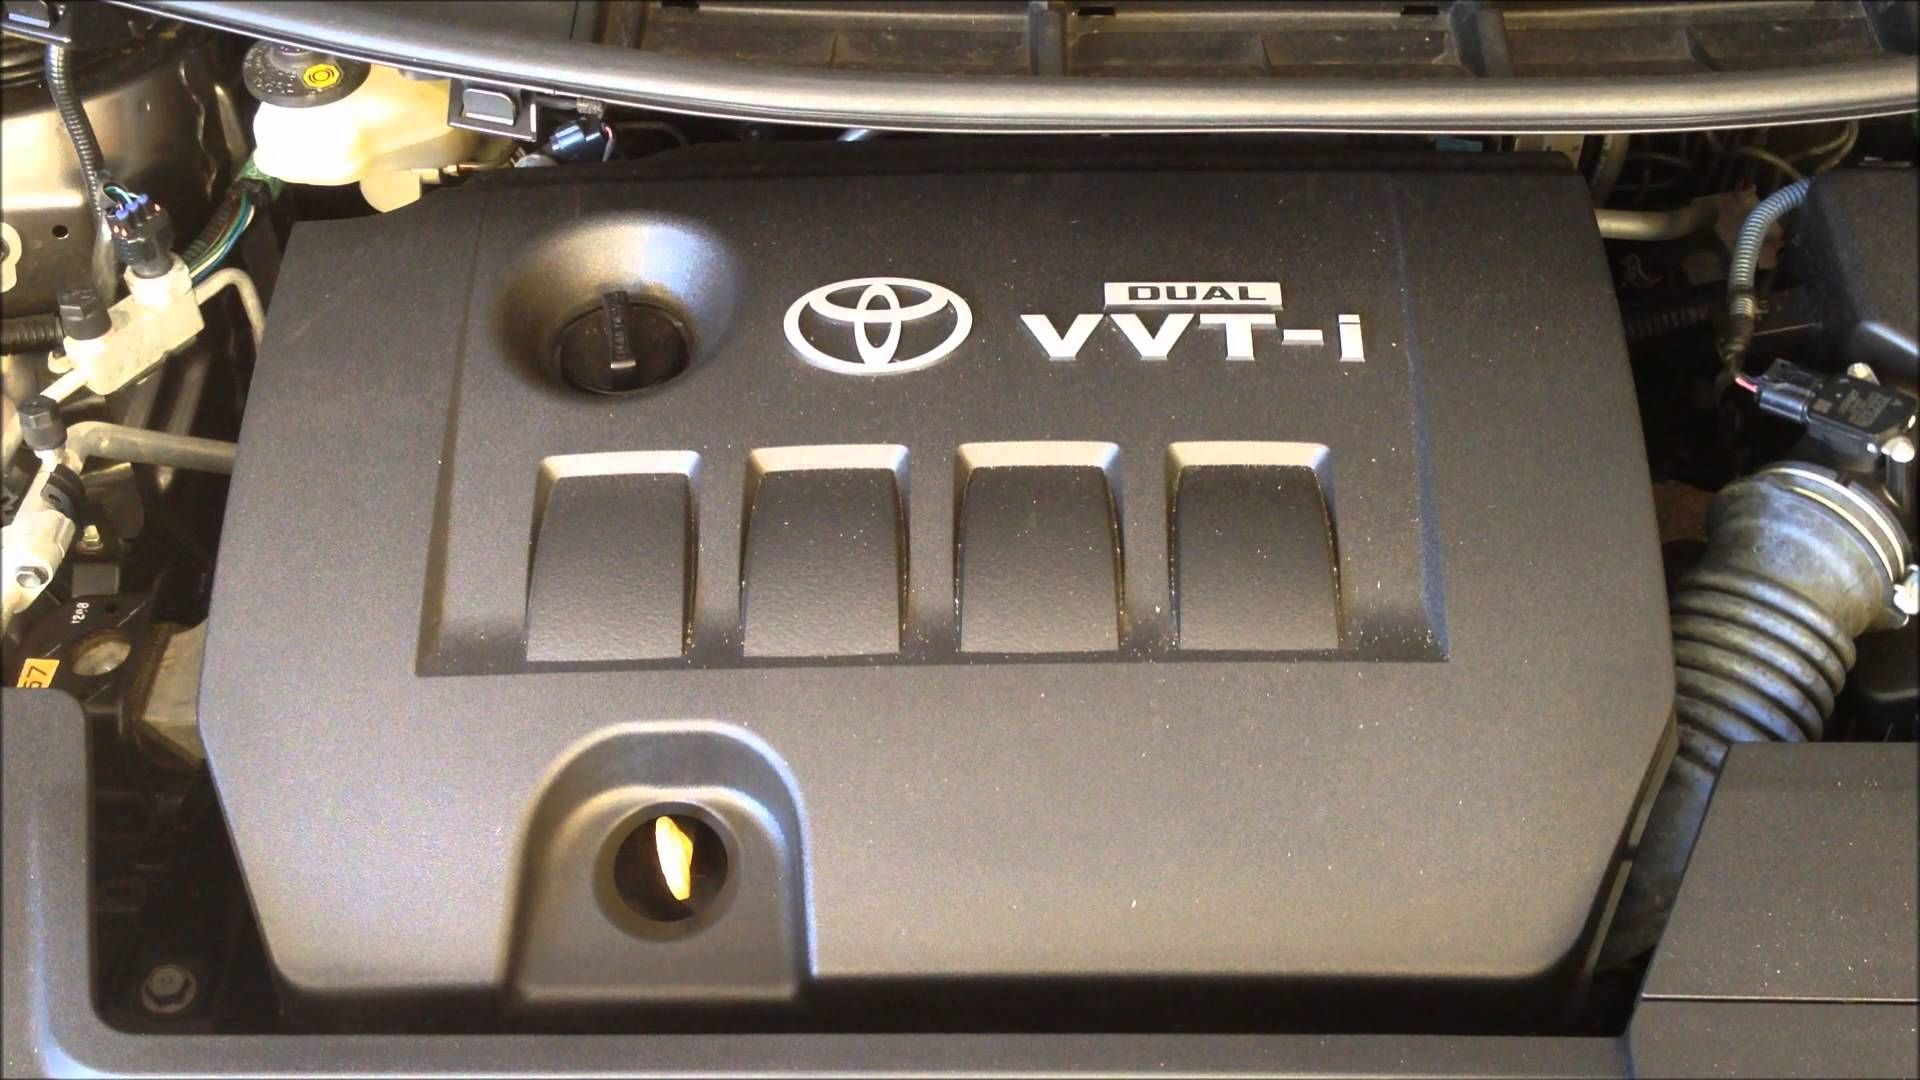 2008 Corolla Ascent 1.8L MULTI POINT Fuel Injected Motor